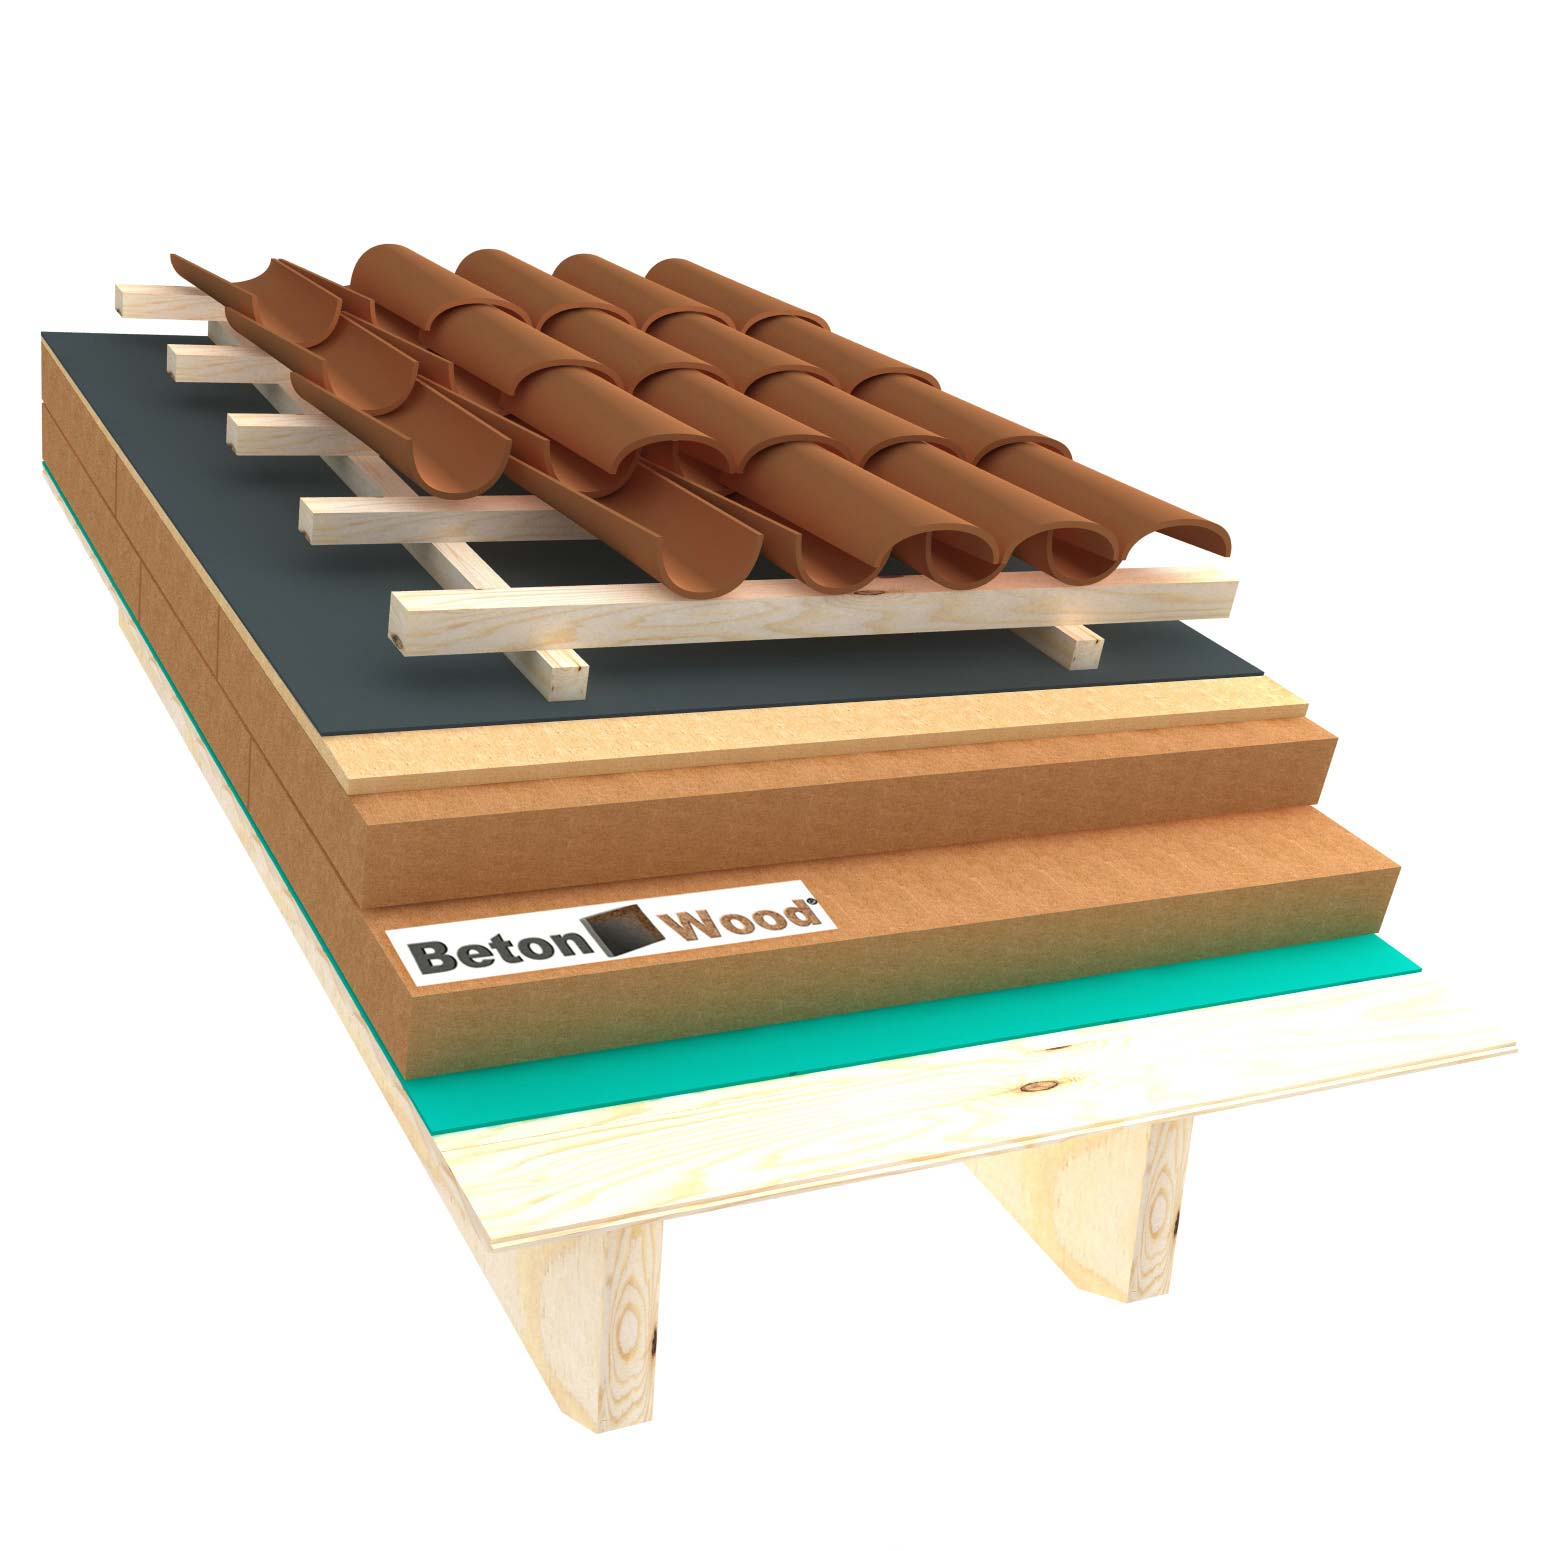 Ventilated roof with wood fiber Isorel and Special on matchboarding